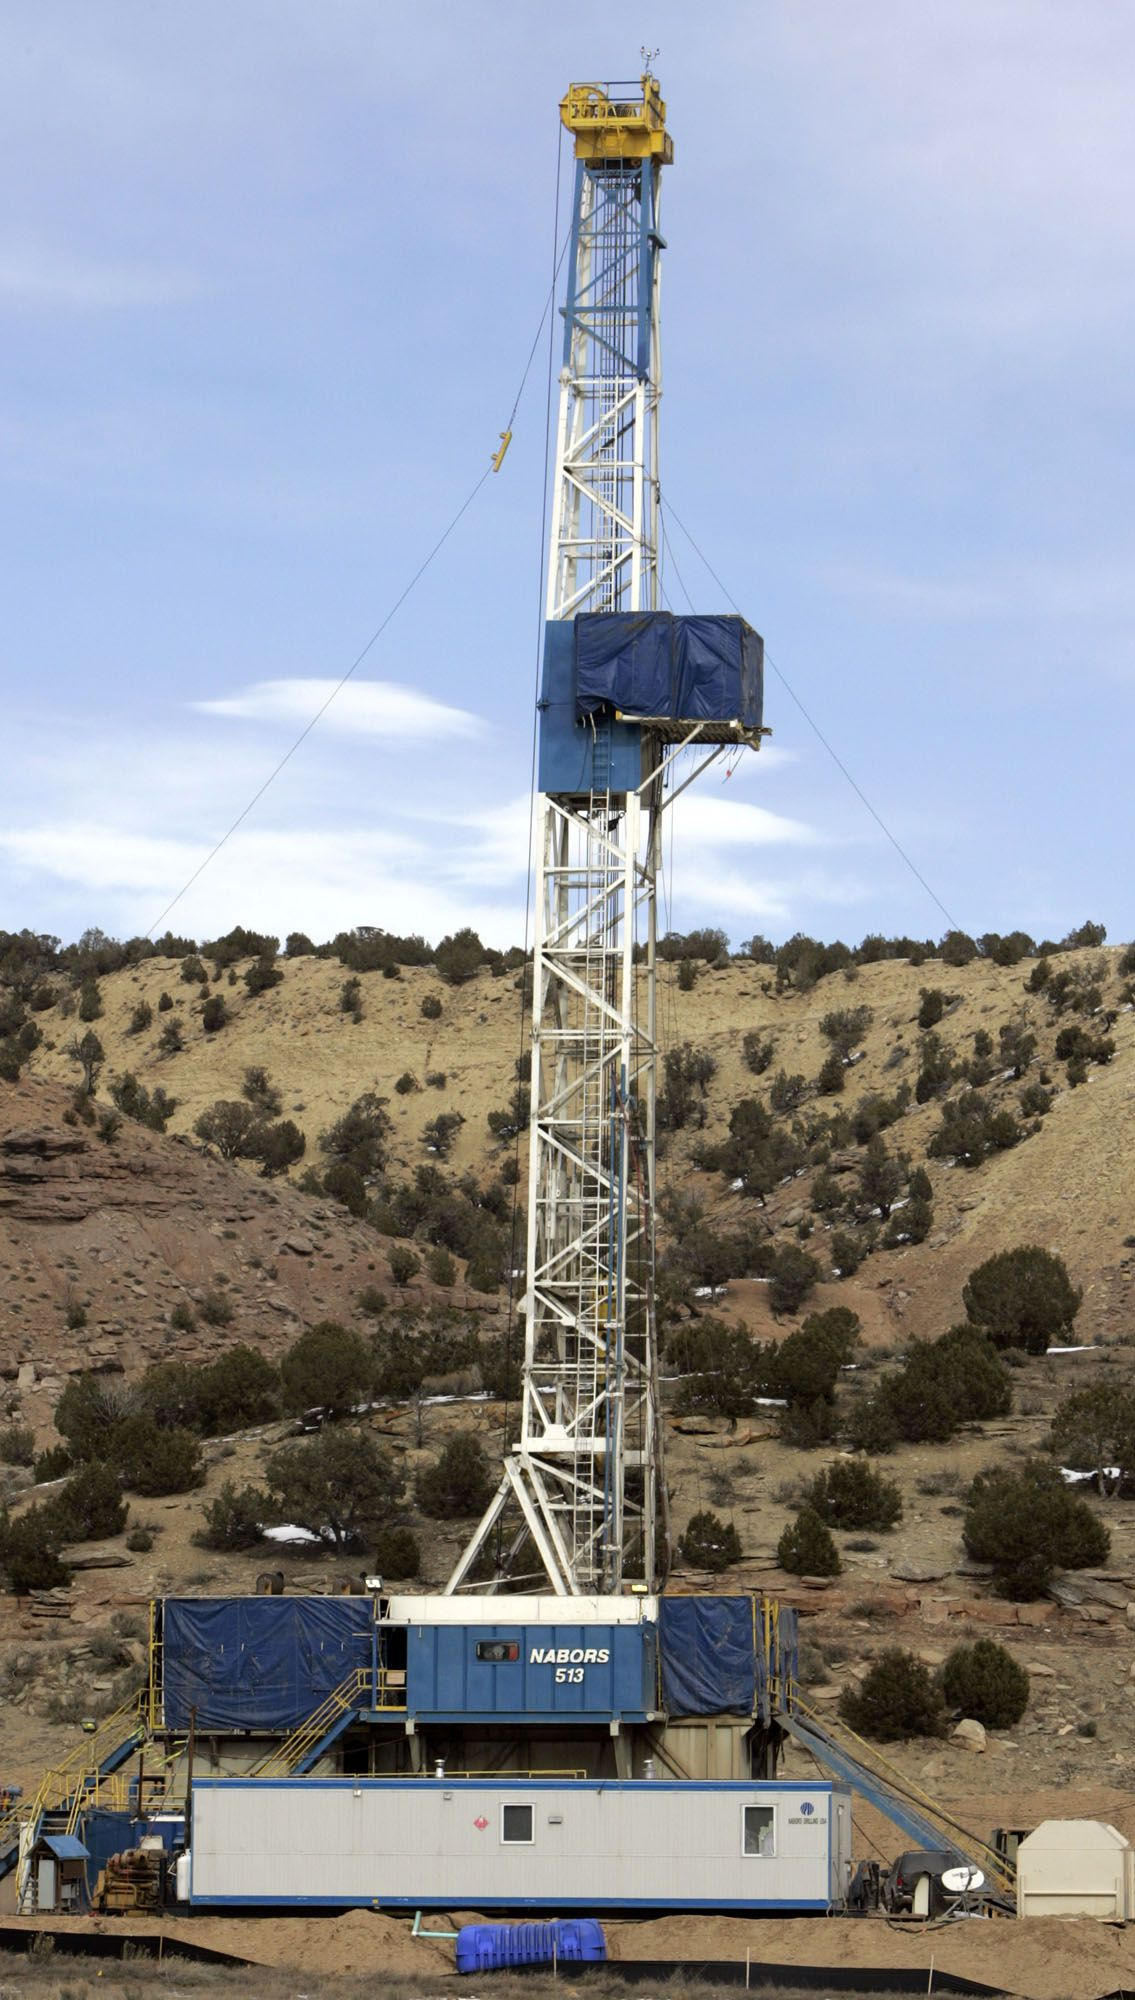 ** ADVANCE FOR WEEKEND EDITIONS, MARCH 4-5 ** A drilling rig stands over a natural gas well near Interstate 70 west of Rifle, Colo., in this photograph taken on Wednesday, Jan. 25, 2006. Energy companies hunting for natural gas are snapping up land all around them, either through old oil shale claims or through federal auctions. (AP Photo/David Zalubowski)